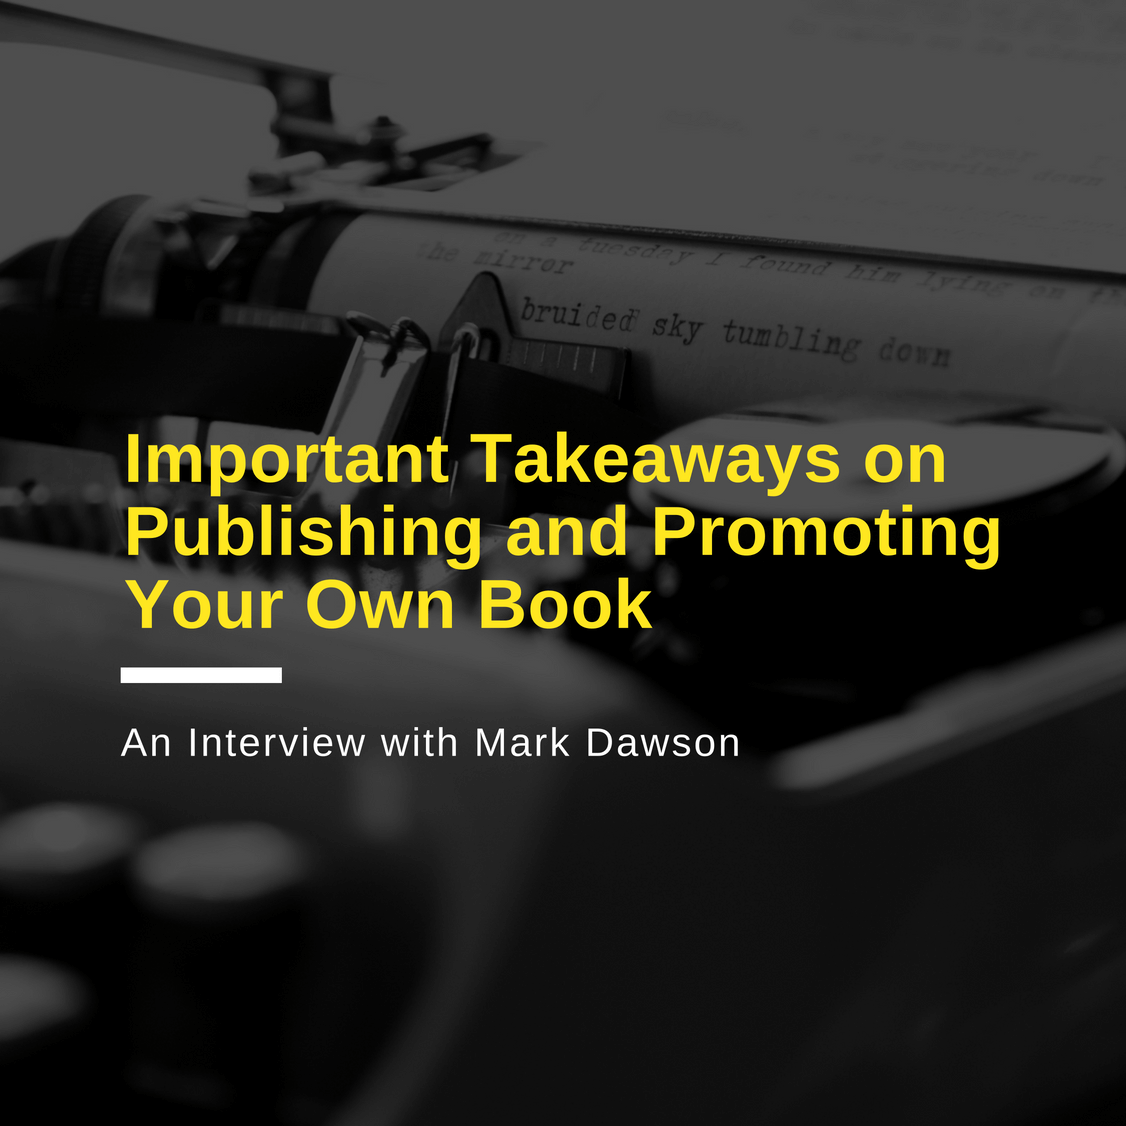 copy-of-copy-of-important-takeaways-on-publishing-and-promoting-your-own-book-1